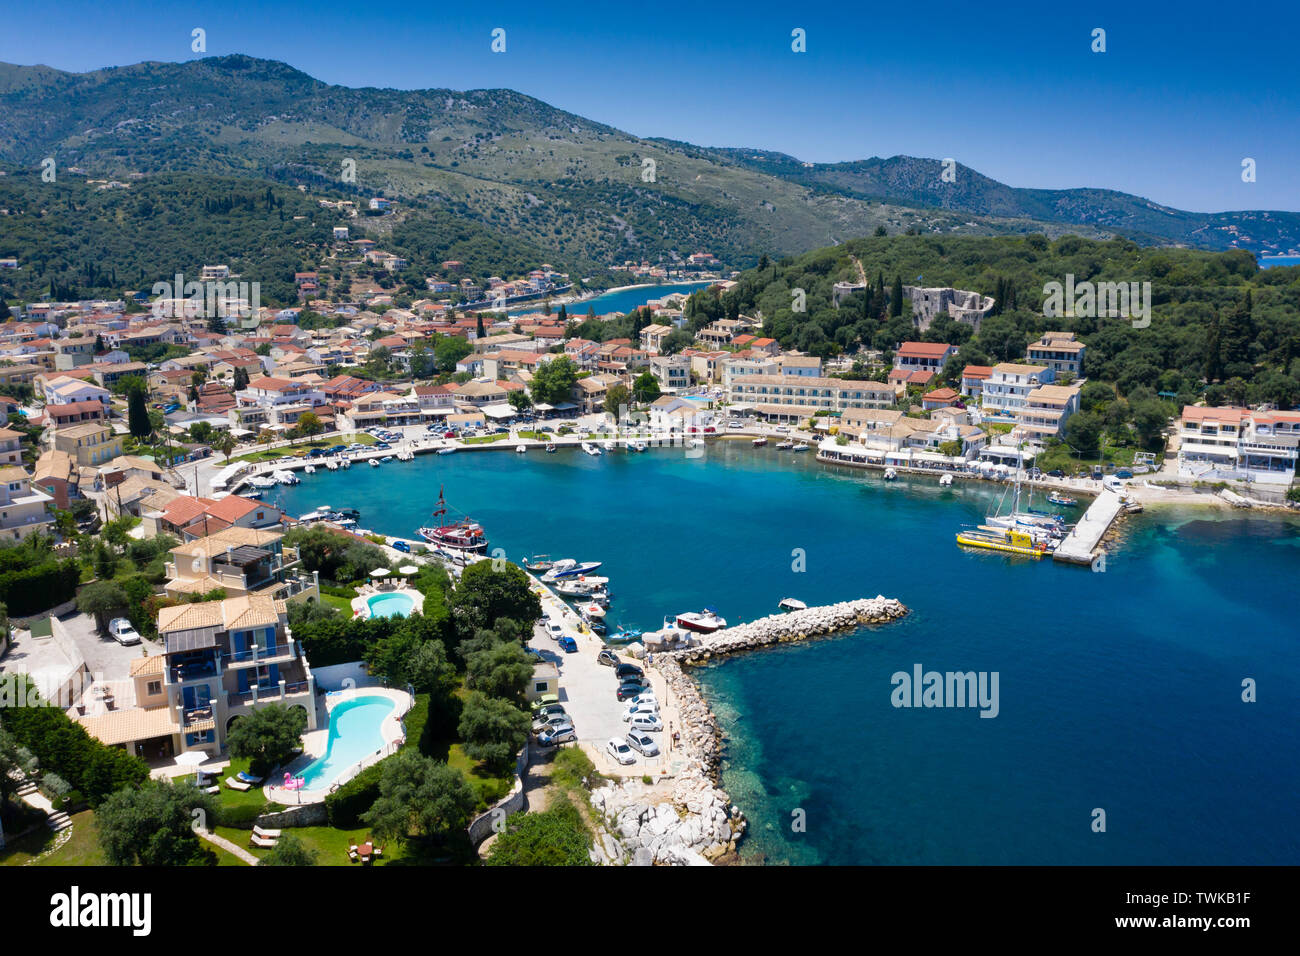 Aerial view of Kassiopi harbour Corfu Greece - Stock Image